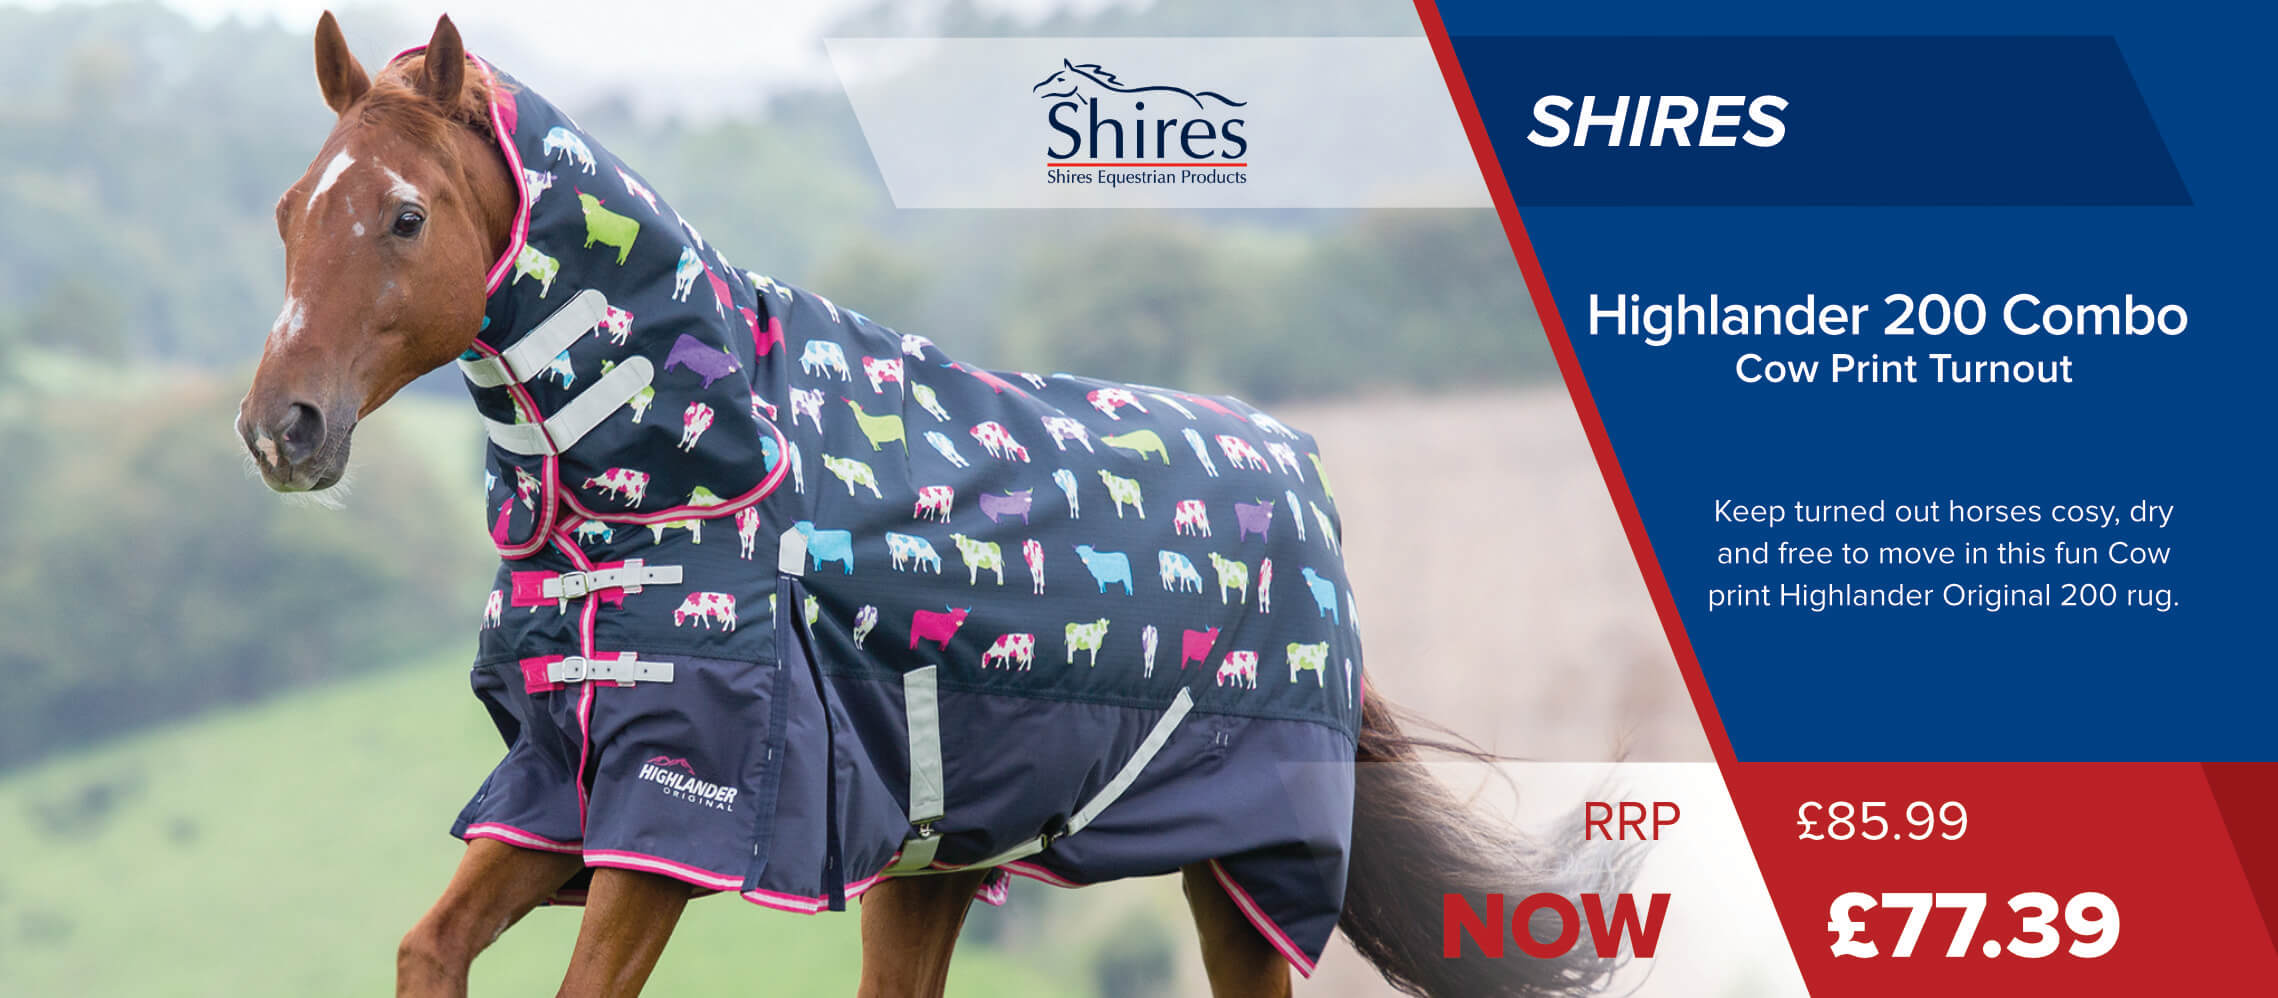 Shires Highlander 200 Combo Turnout - Cow Print